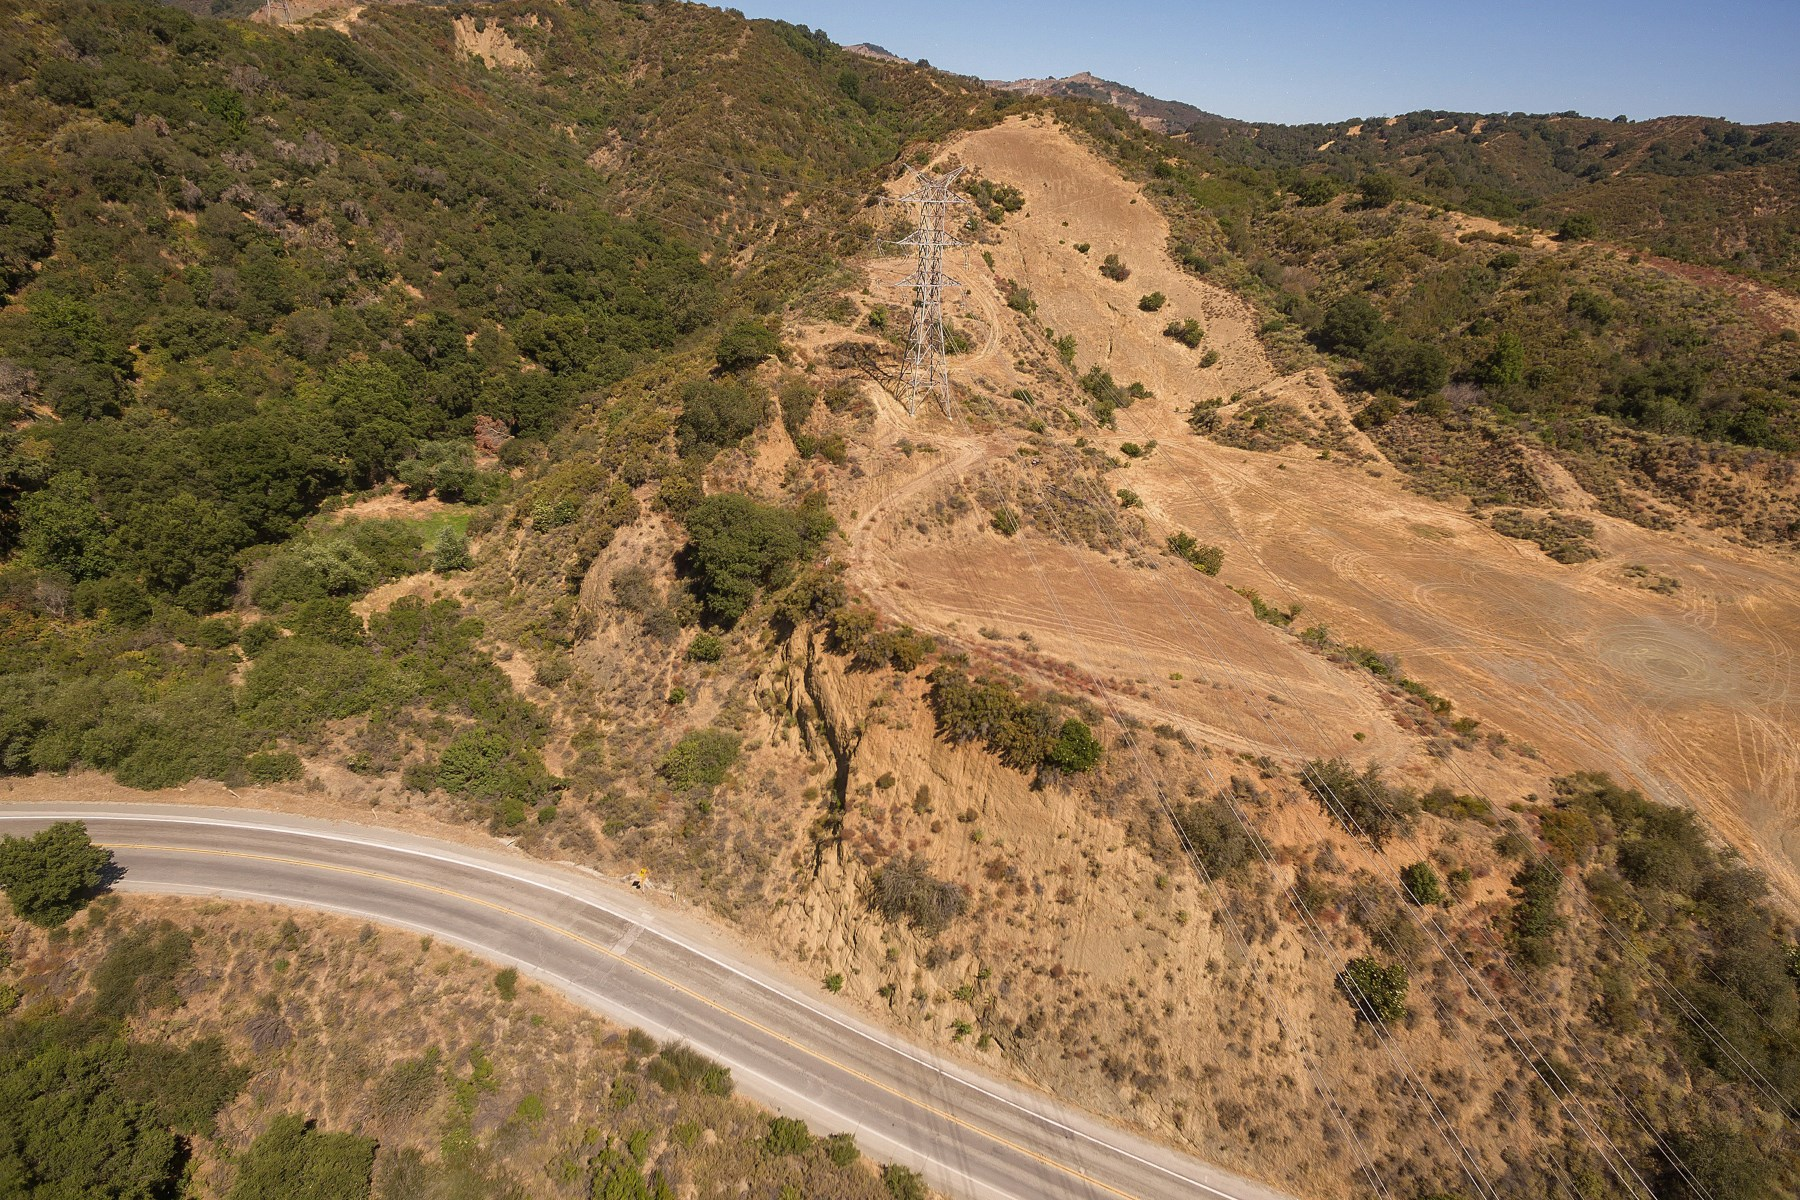 Land for Sale at Two Lots in Premier Cupertino Location 0 Stevens Canyon Road, Cupertino, California, 95014 United States